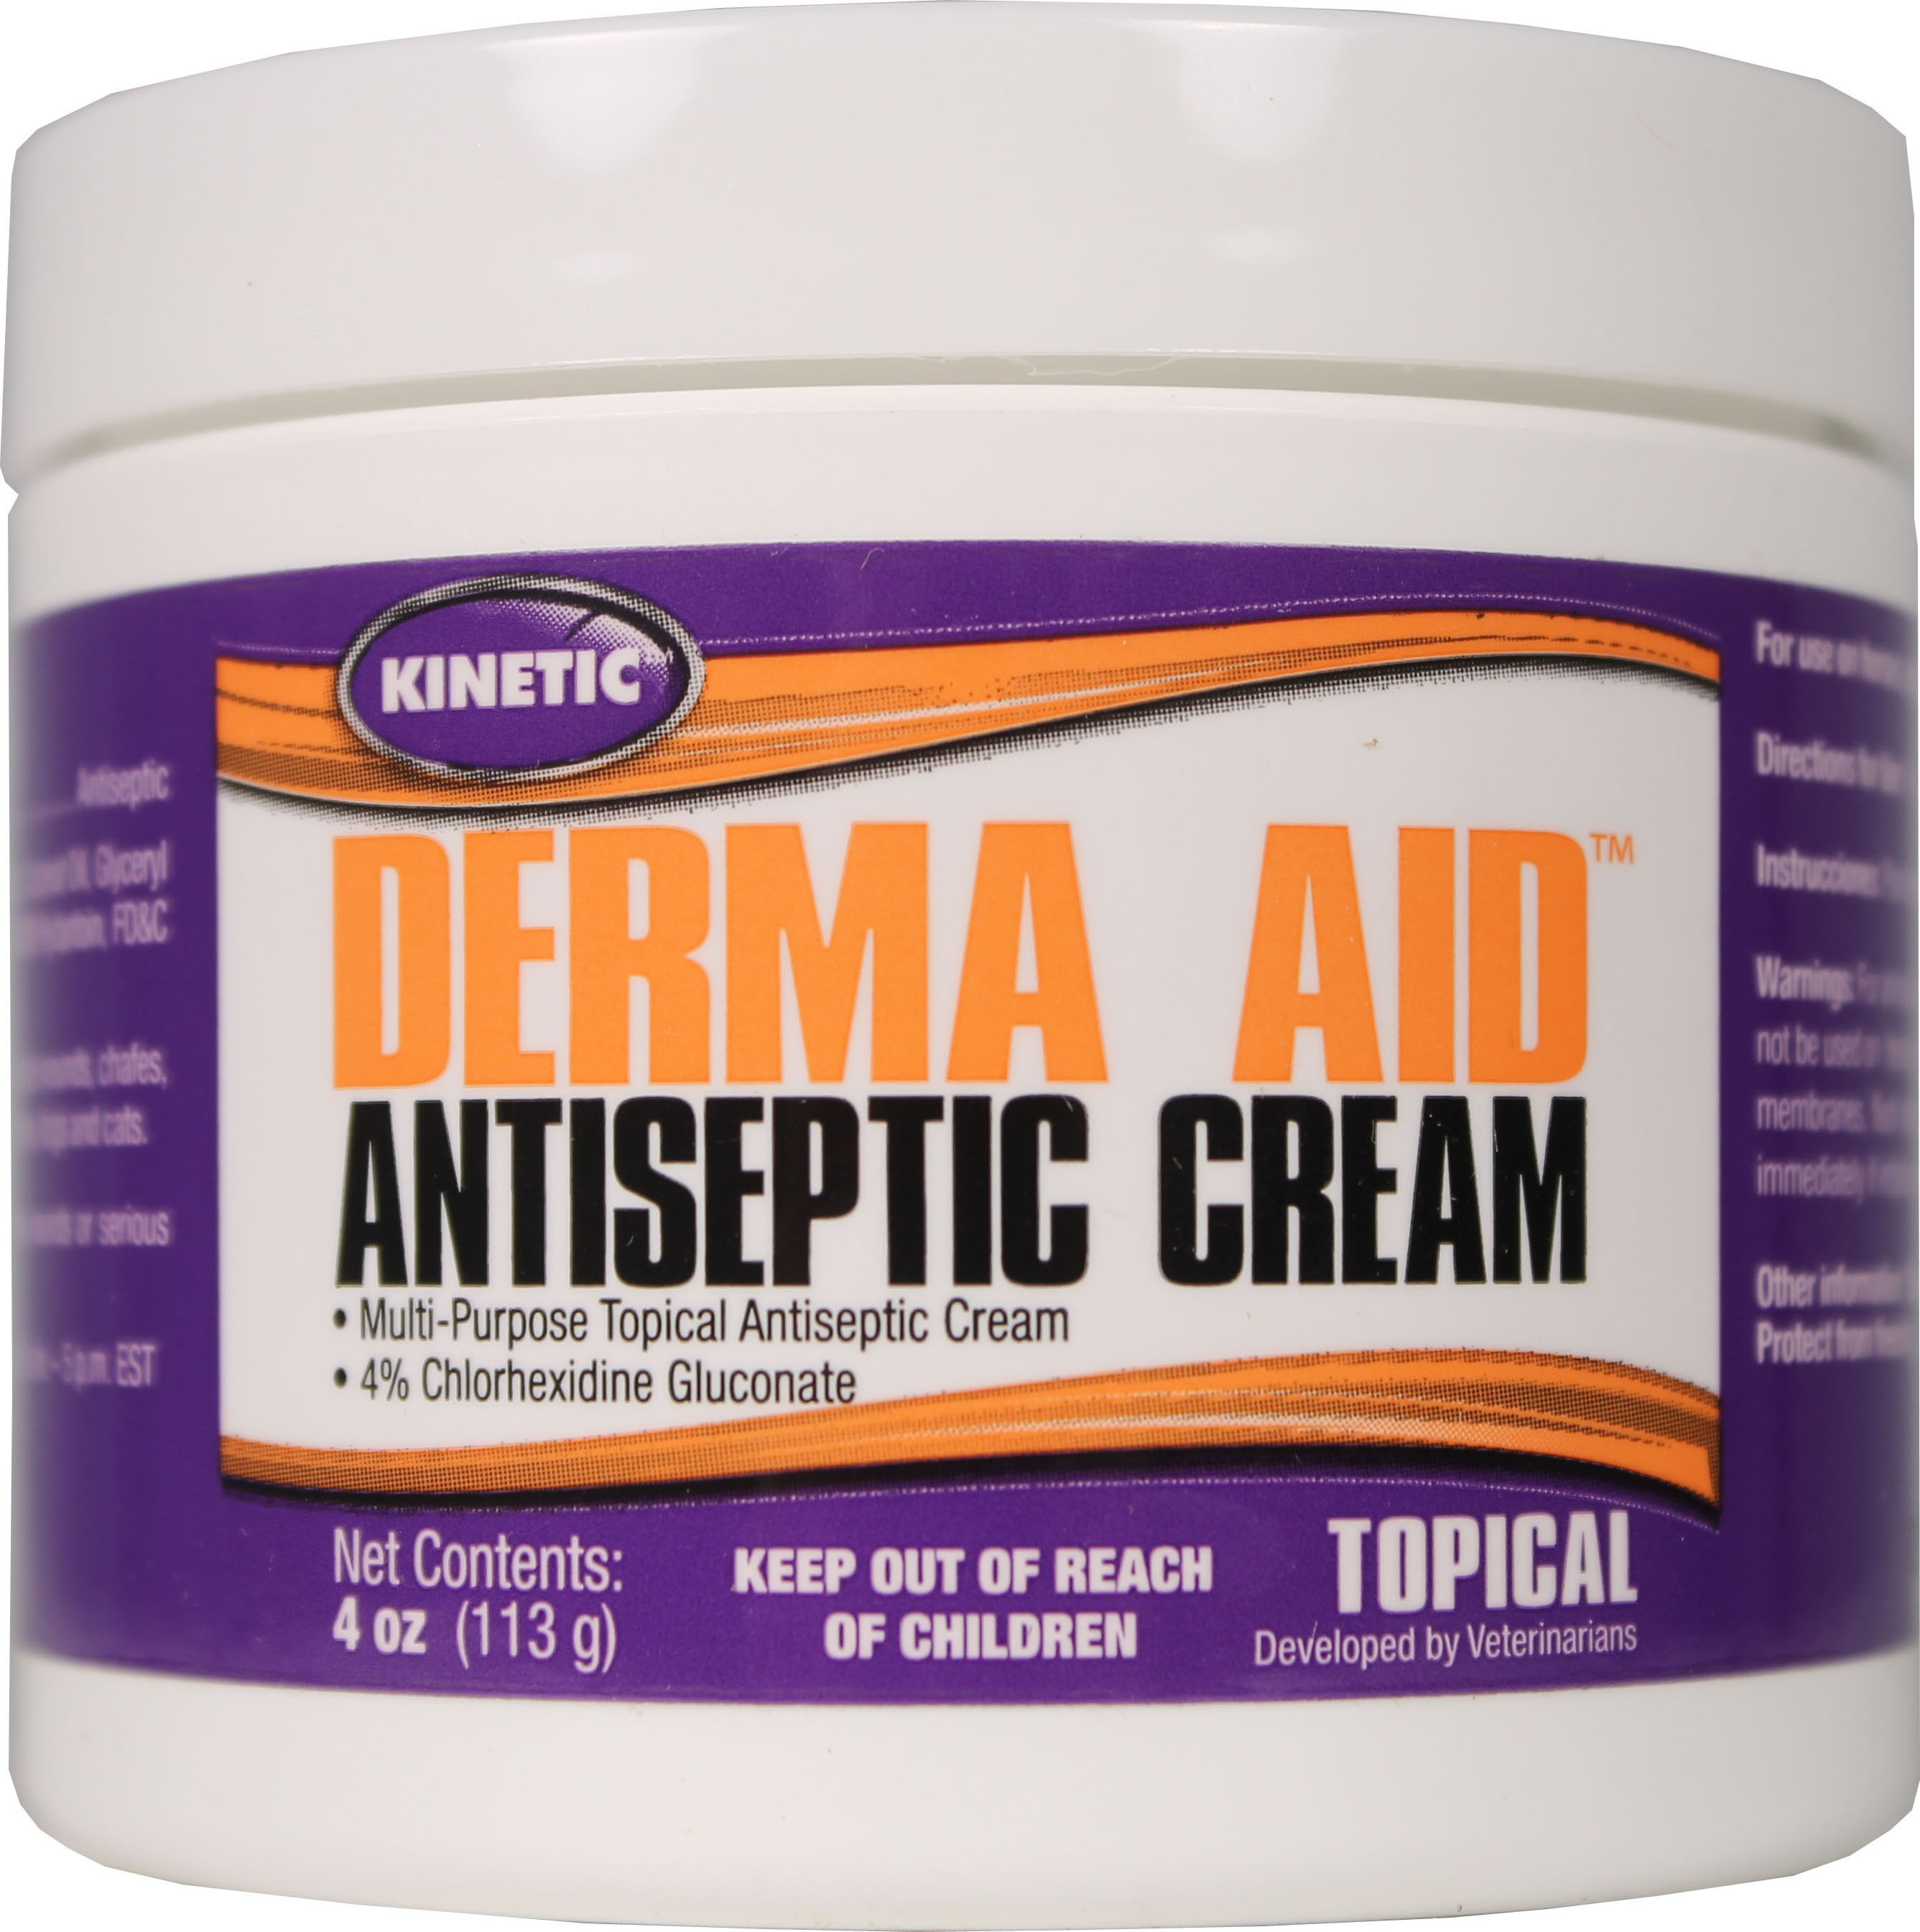 DERMA AID ANTISEPTIC CREAM FOR WOUNDS